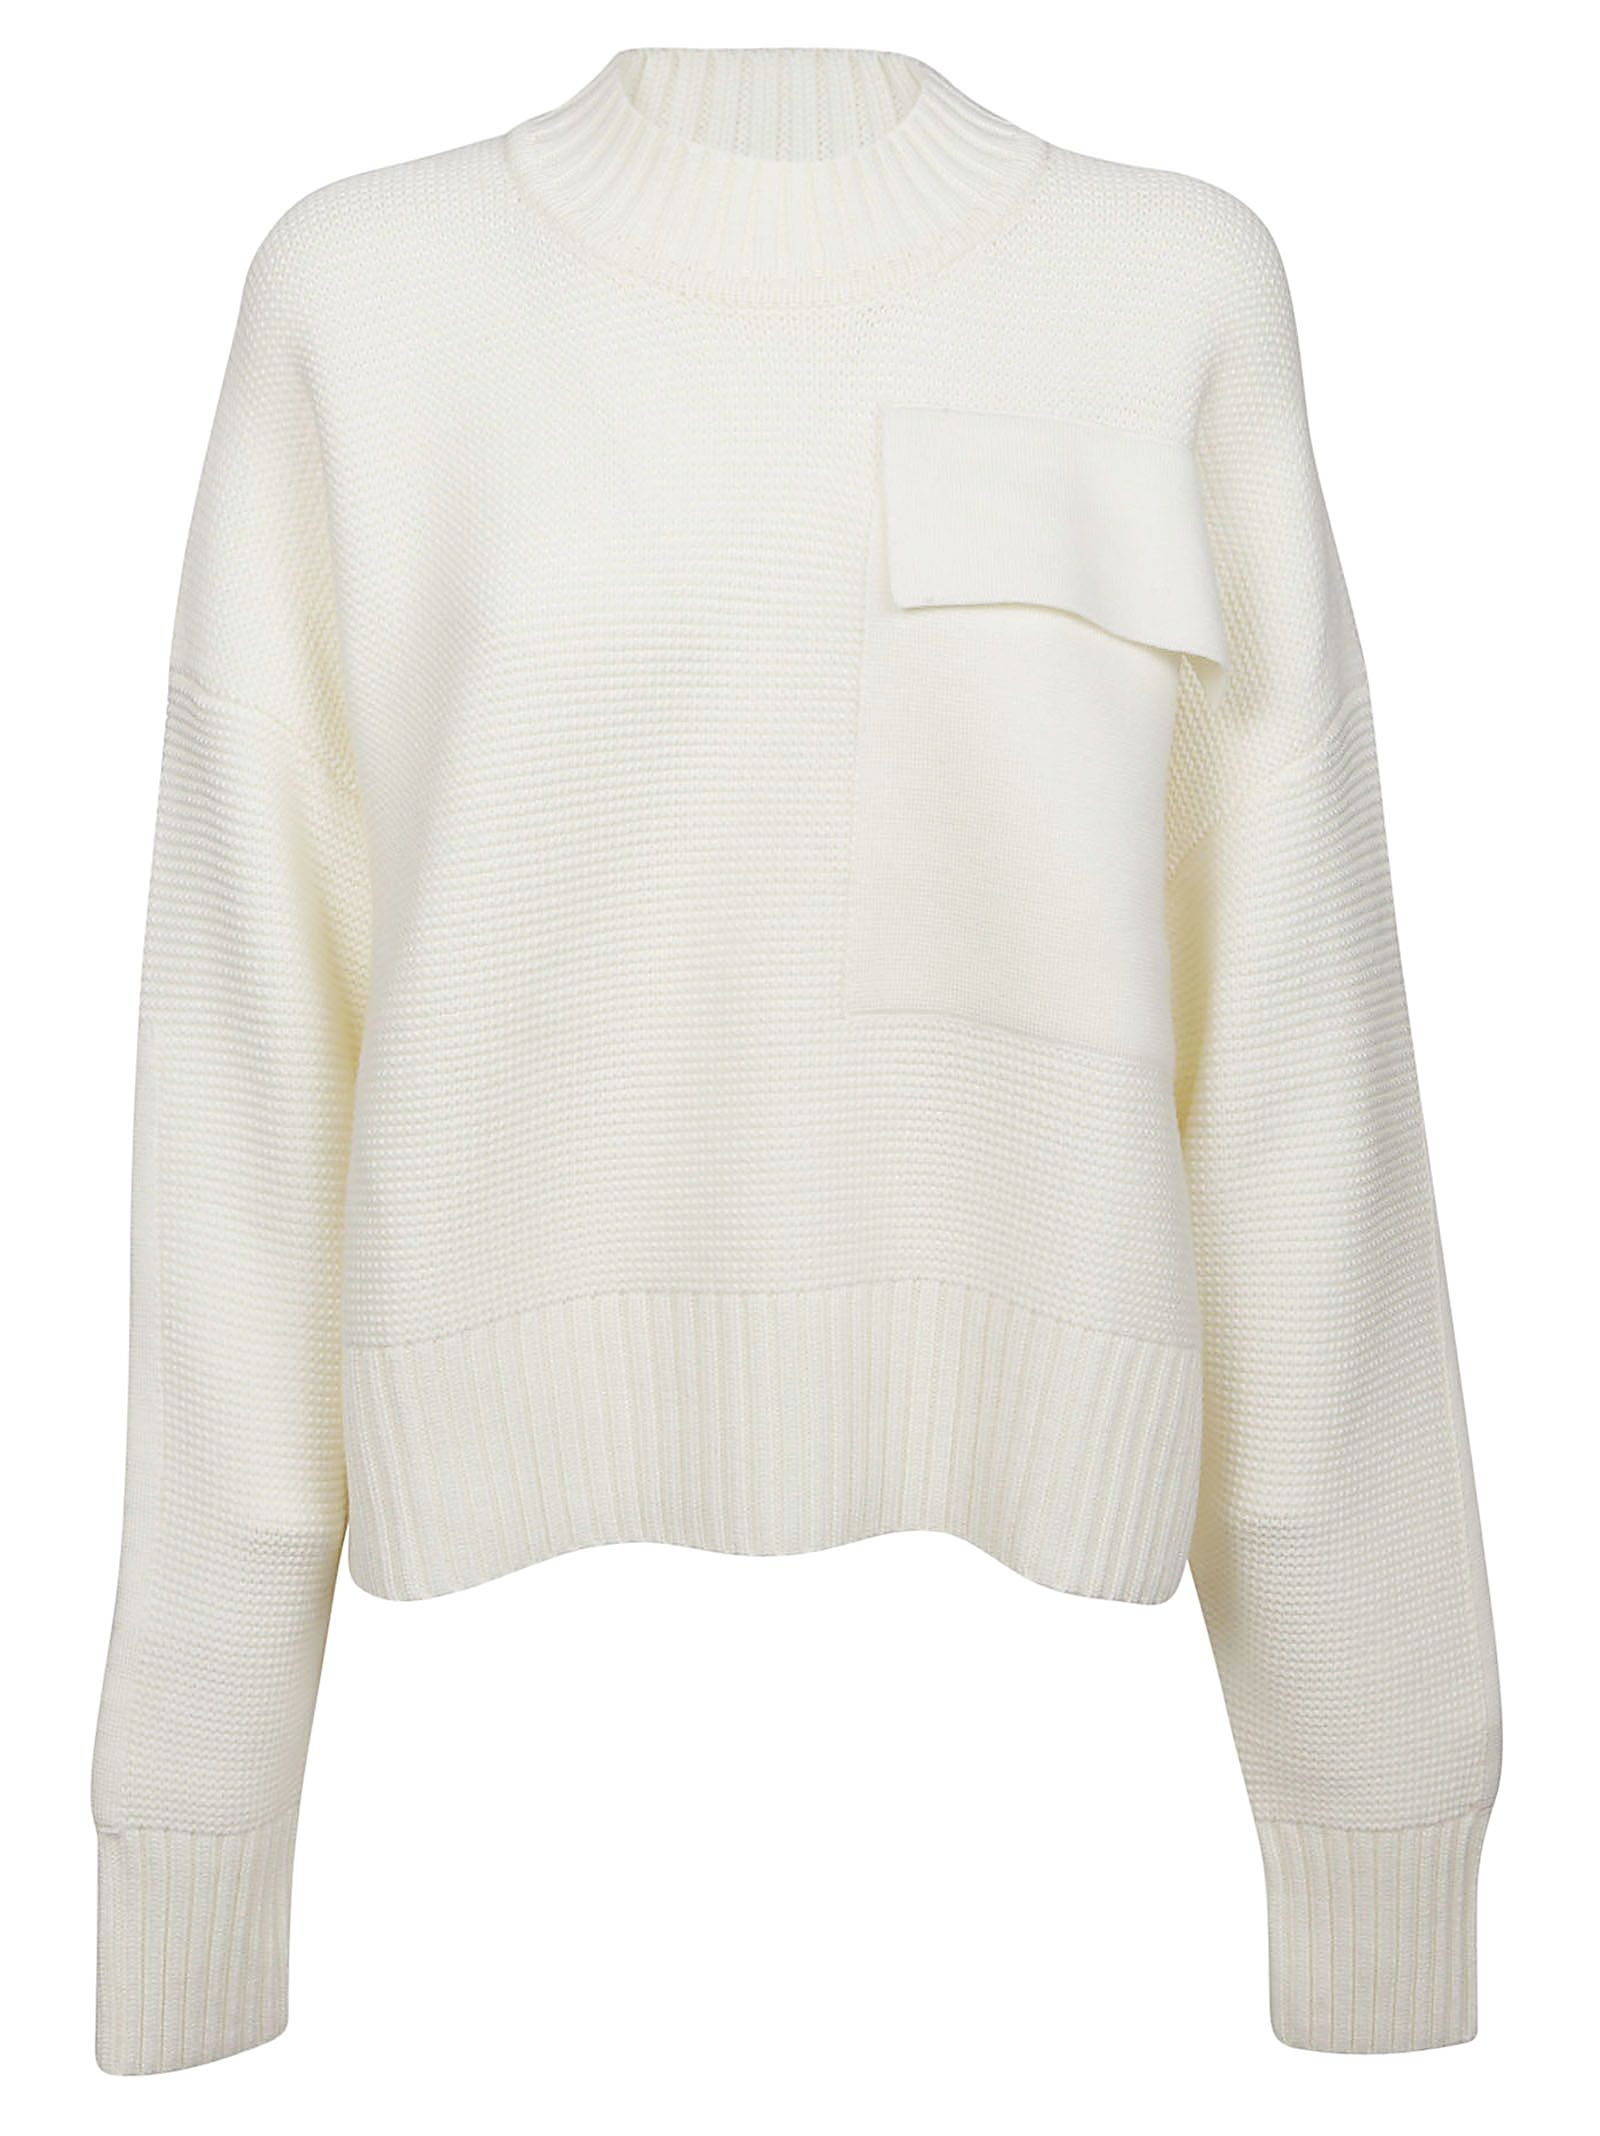 APPLIQUE RIBBED SWEATER